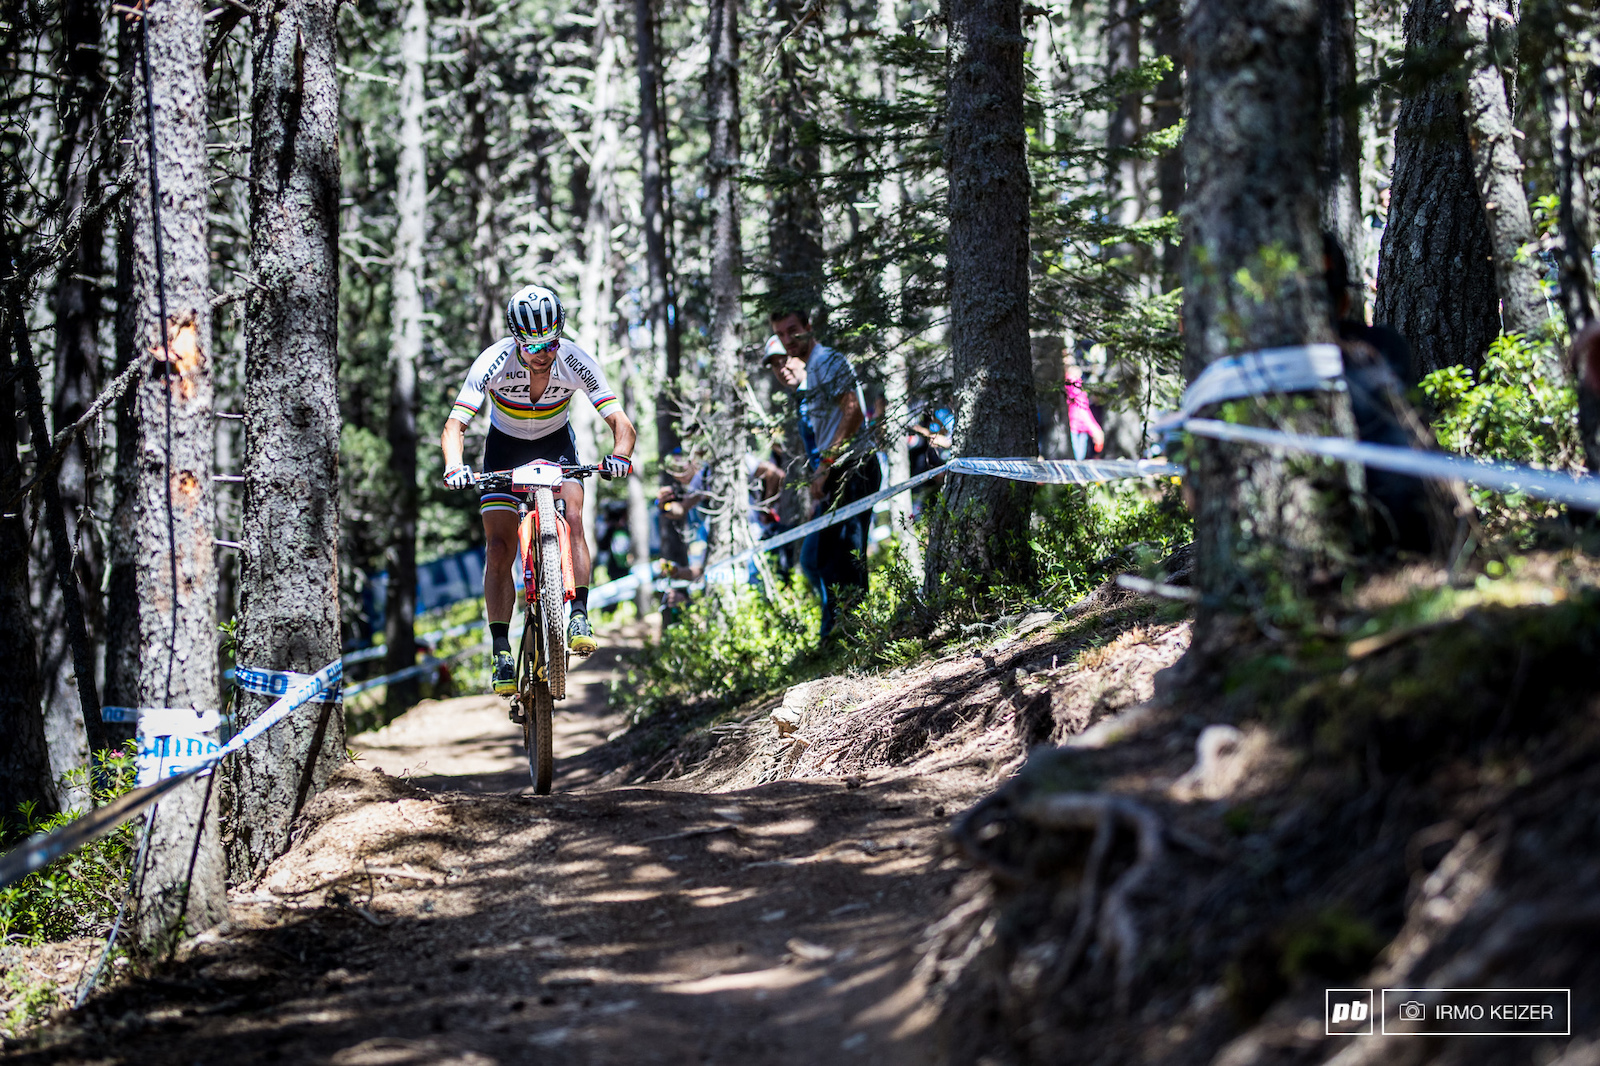 Schurter s skills are second to none in the men s field. His riding is smooth controlled and confident. Combine this with the endurance power and experience and there it is. This is a world class athlete.